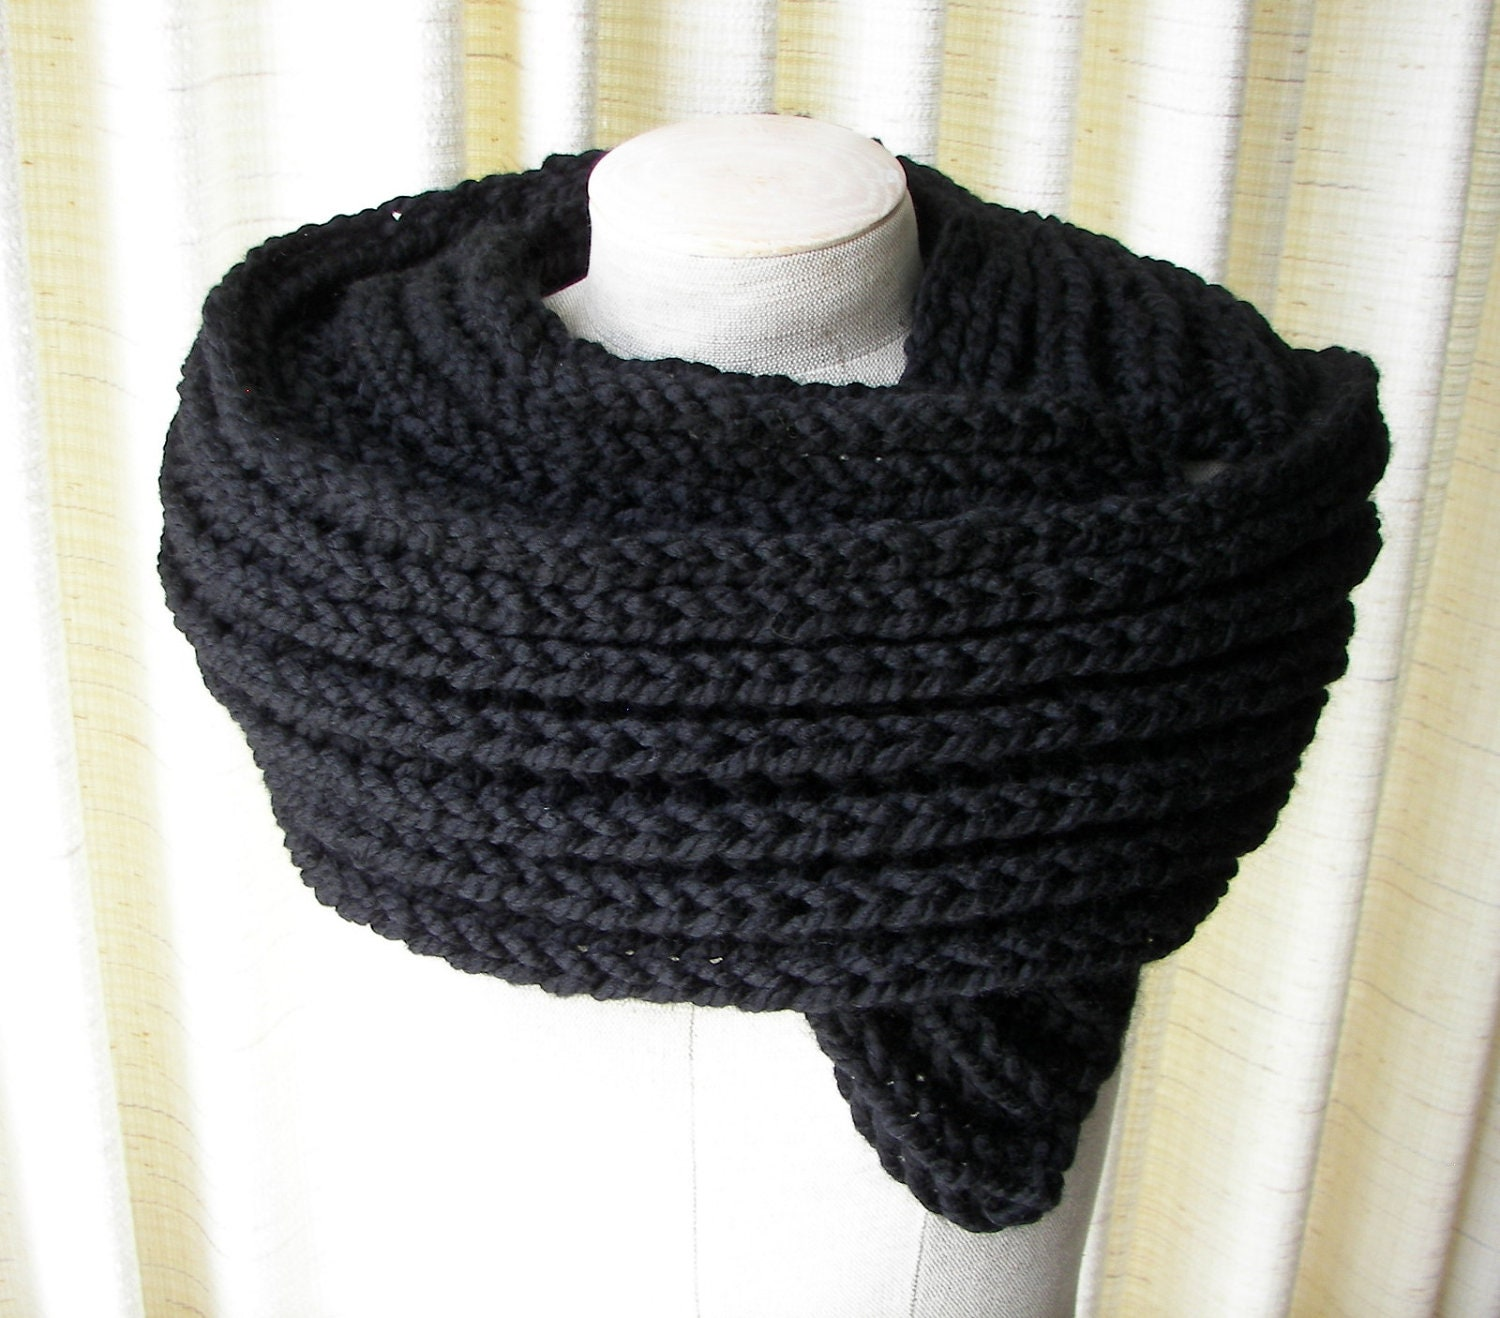 Classic BLACK Mens Scarf Chunky RIB KNIT Hand Knitted by ATIdesign Hand Knitted Men's Scarves